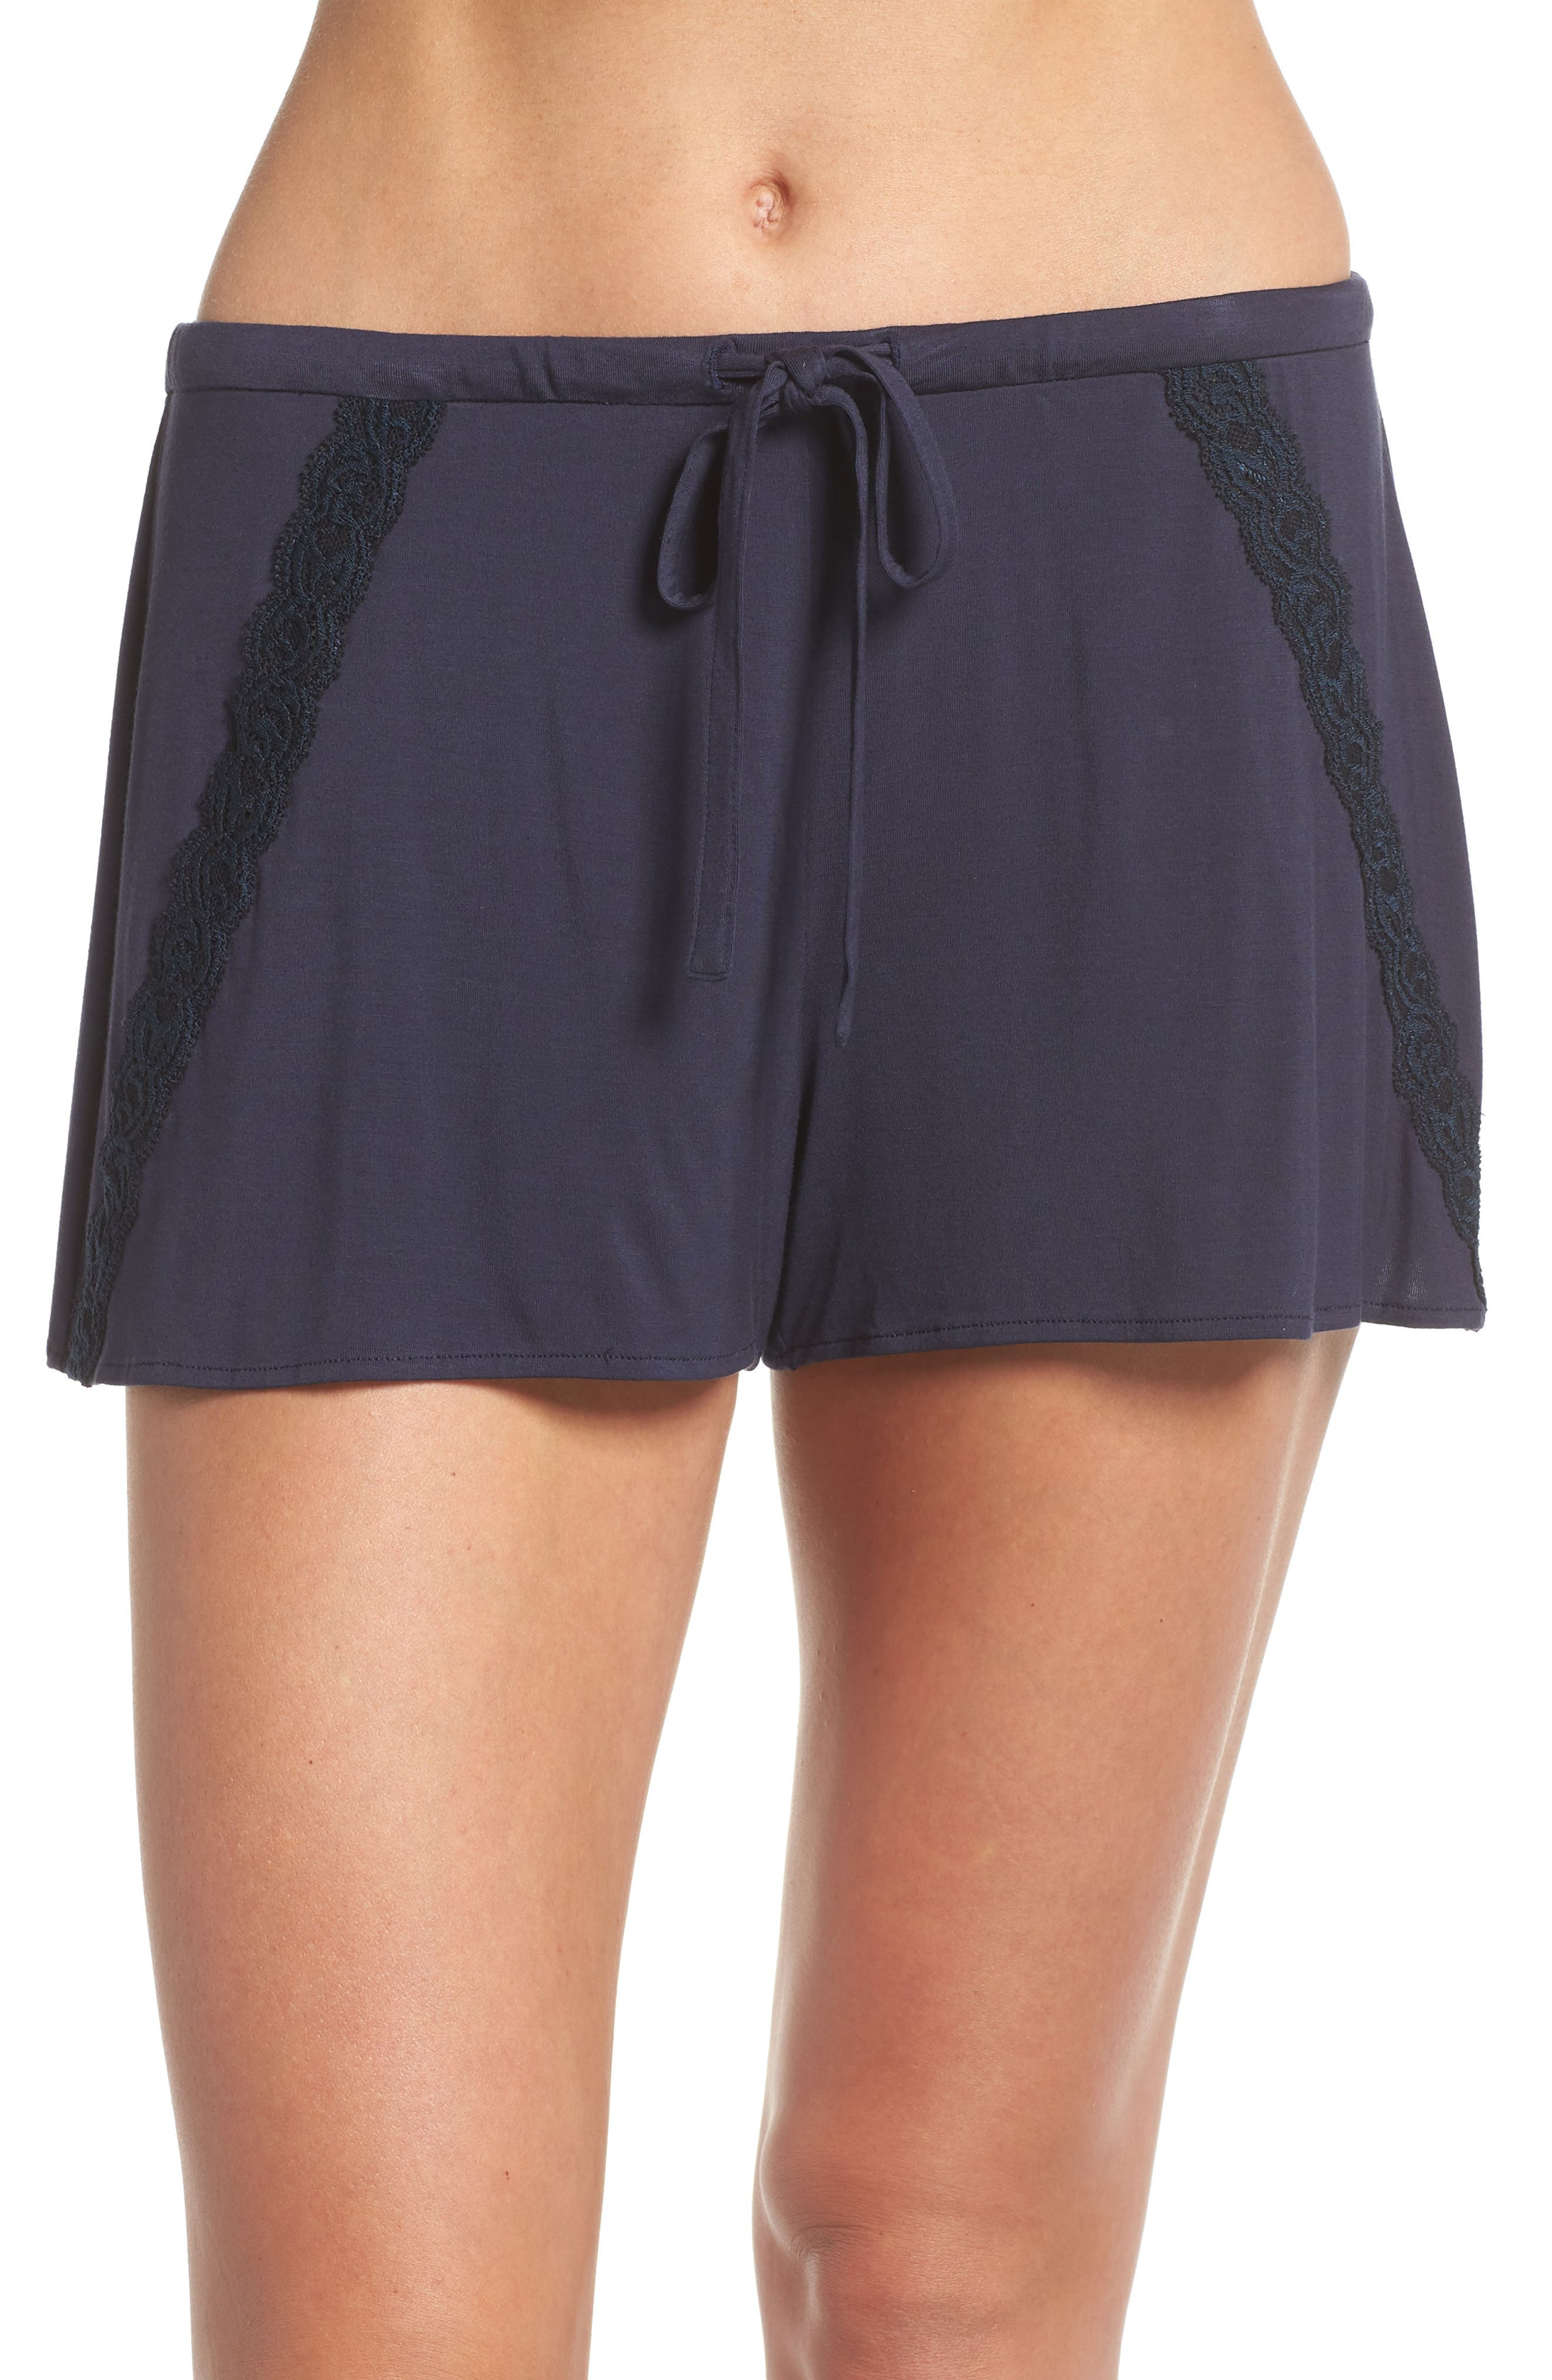 Feathers Essential Pajama Shorts,                             Main thumbnail 1, color,                             438